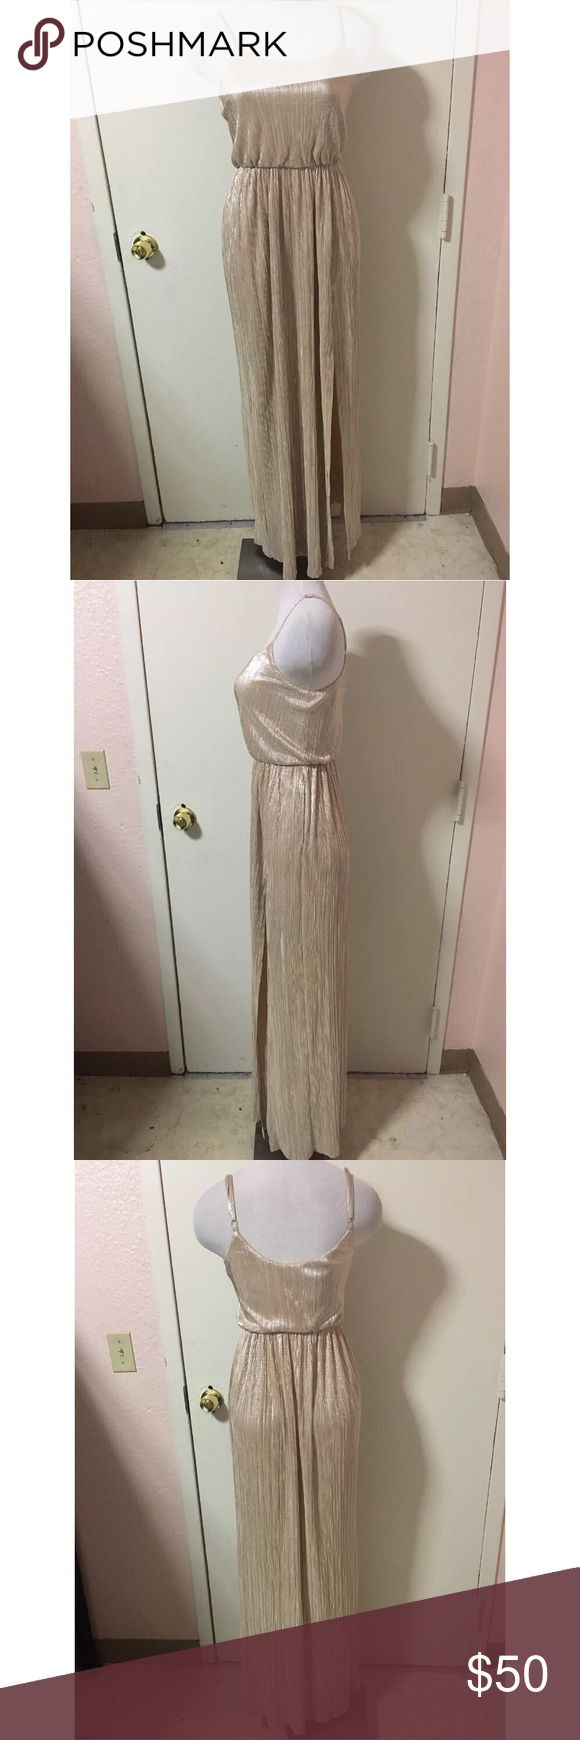 Cream Formal High Slit Maxi Formal Ball Gown Dress Previously Owned. In Good Condition. Size: XS Brand: BCBGeneration BCBGeneration Dresses Maxi